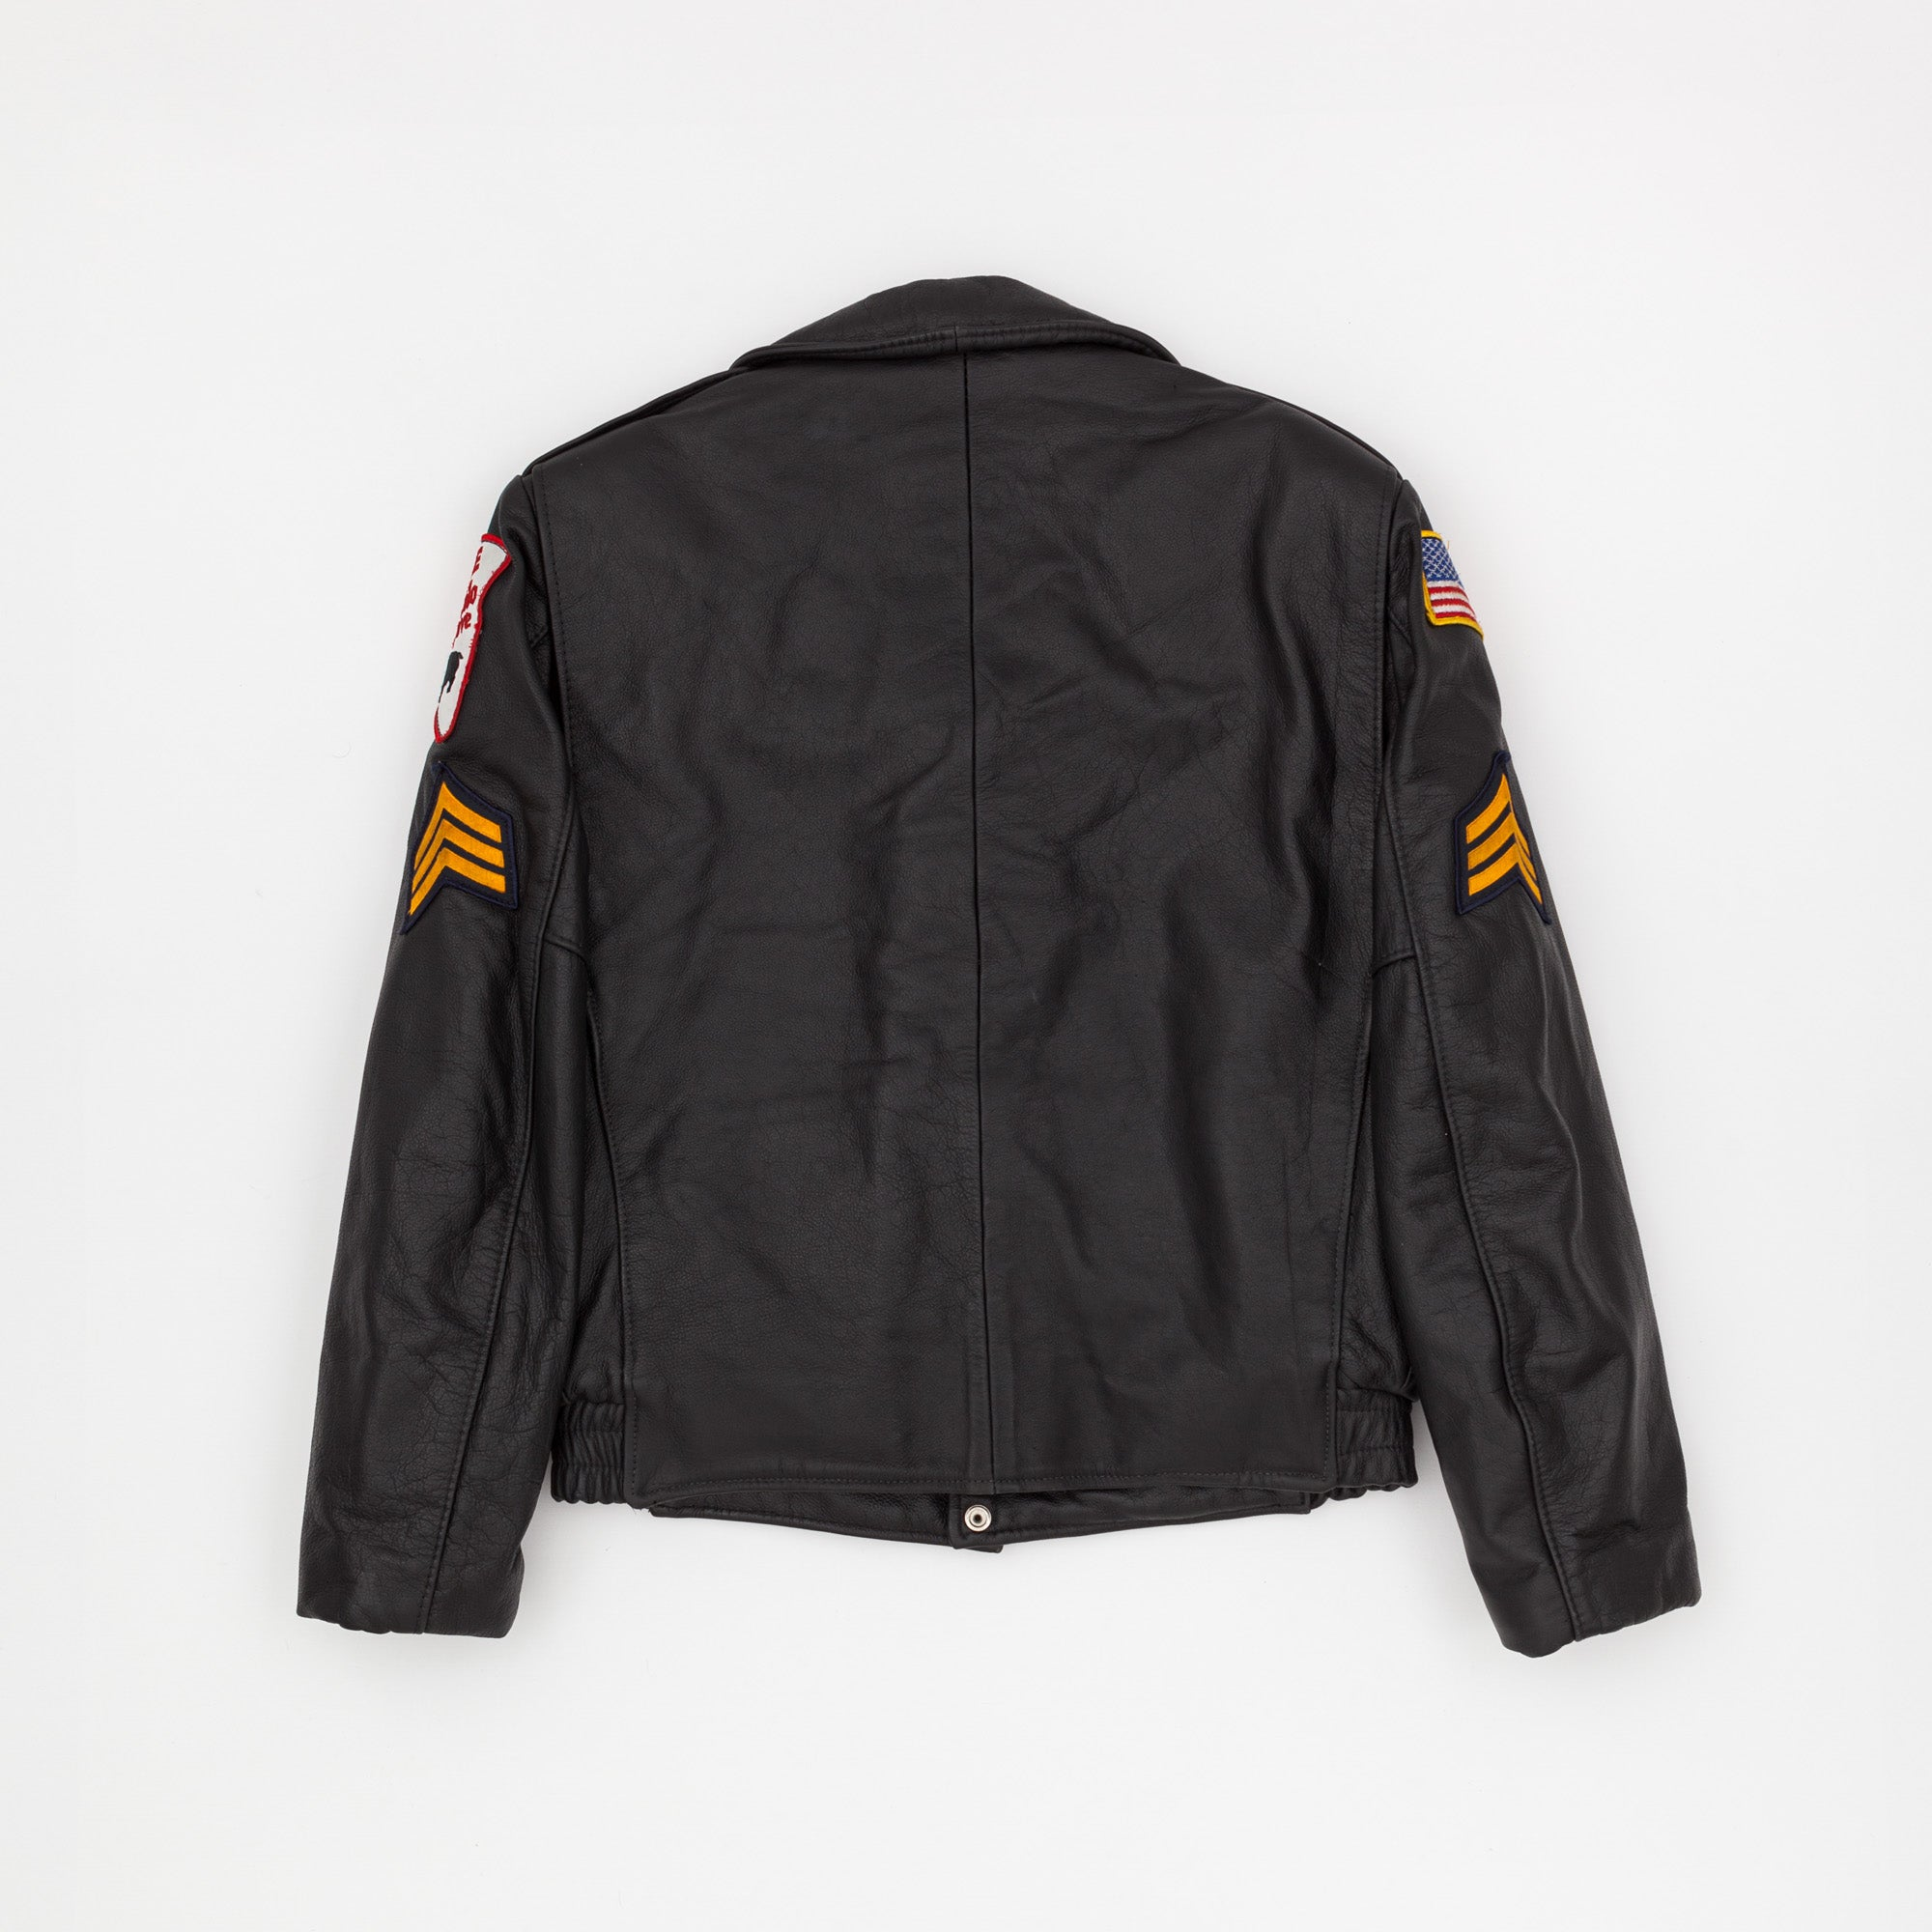 Nates Leather Tailors Police Leather Jacket